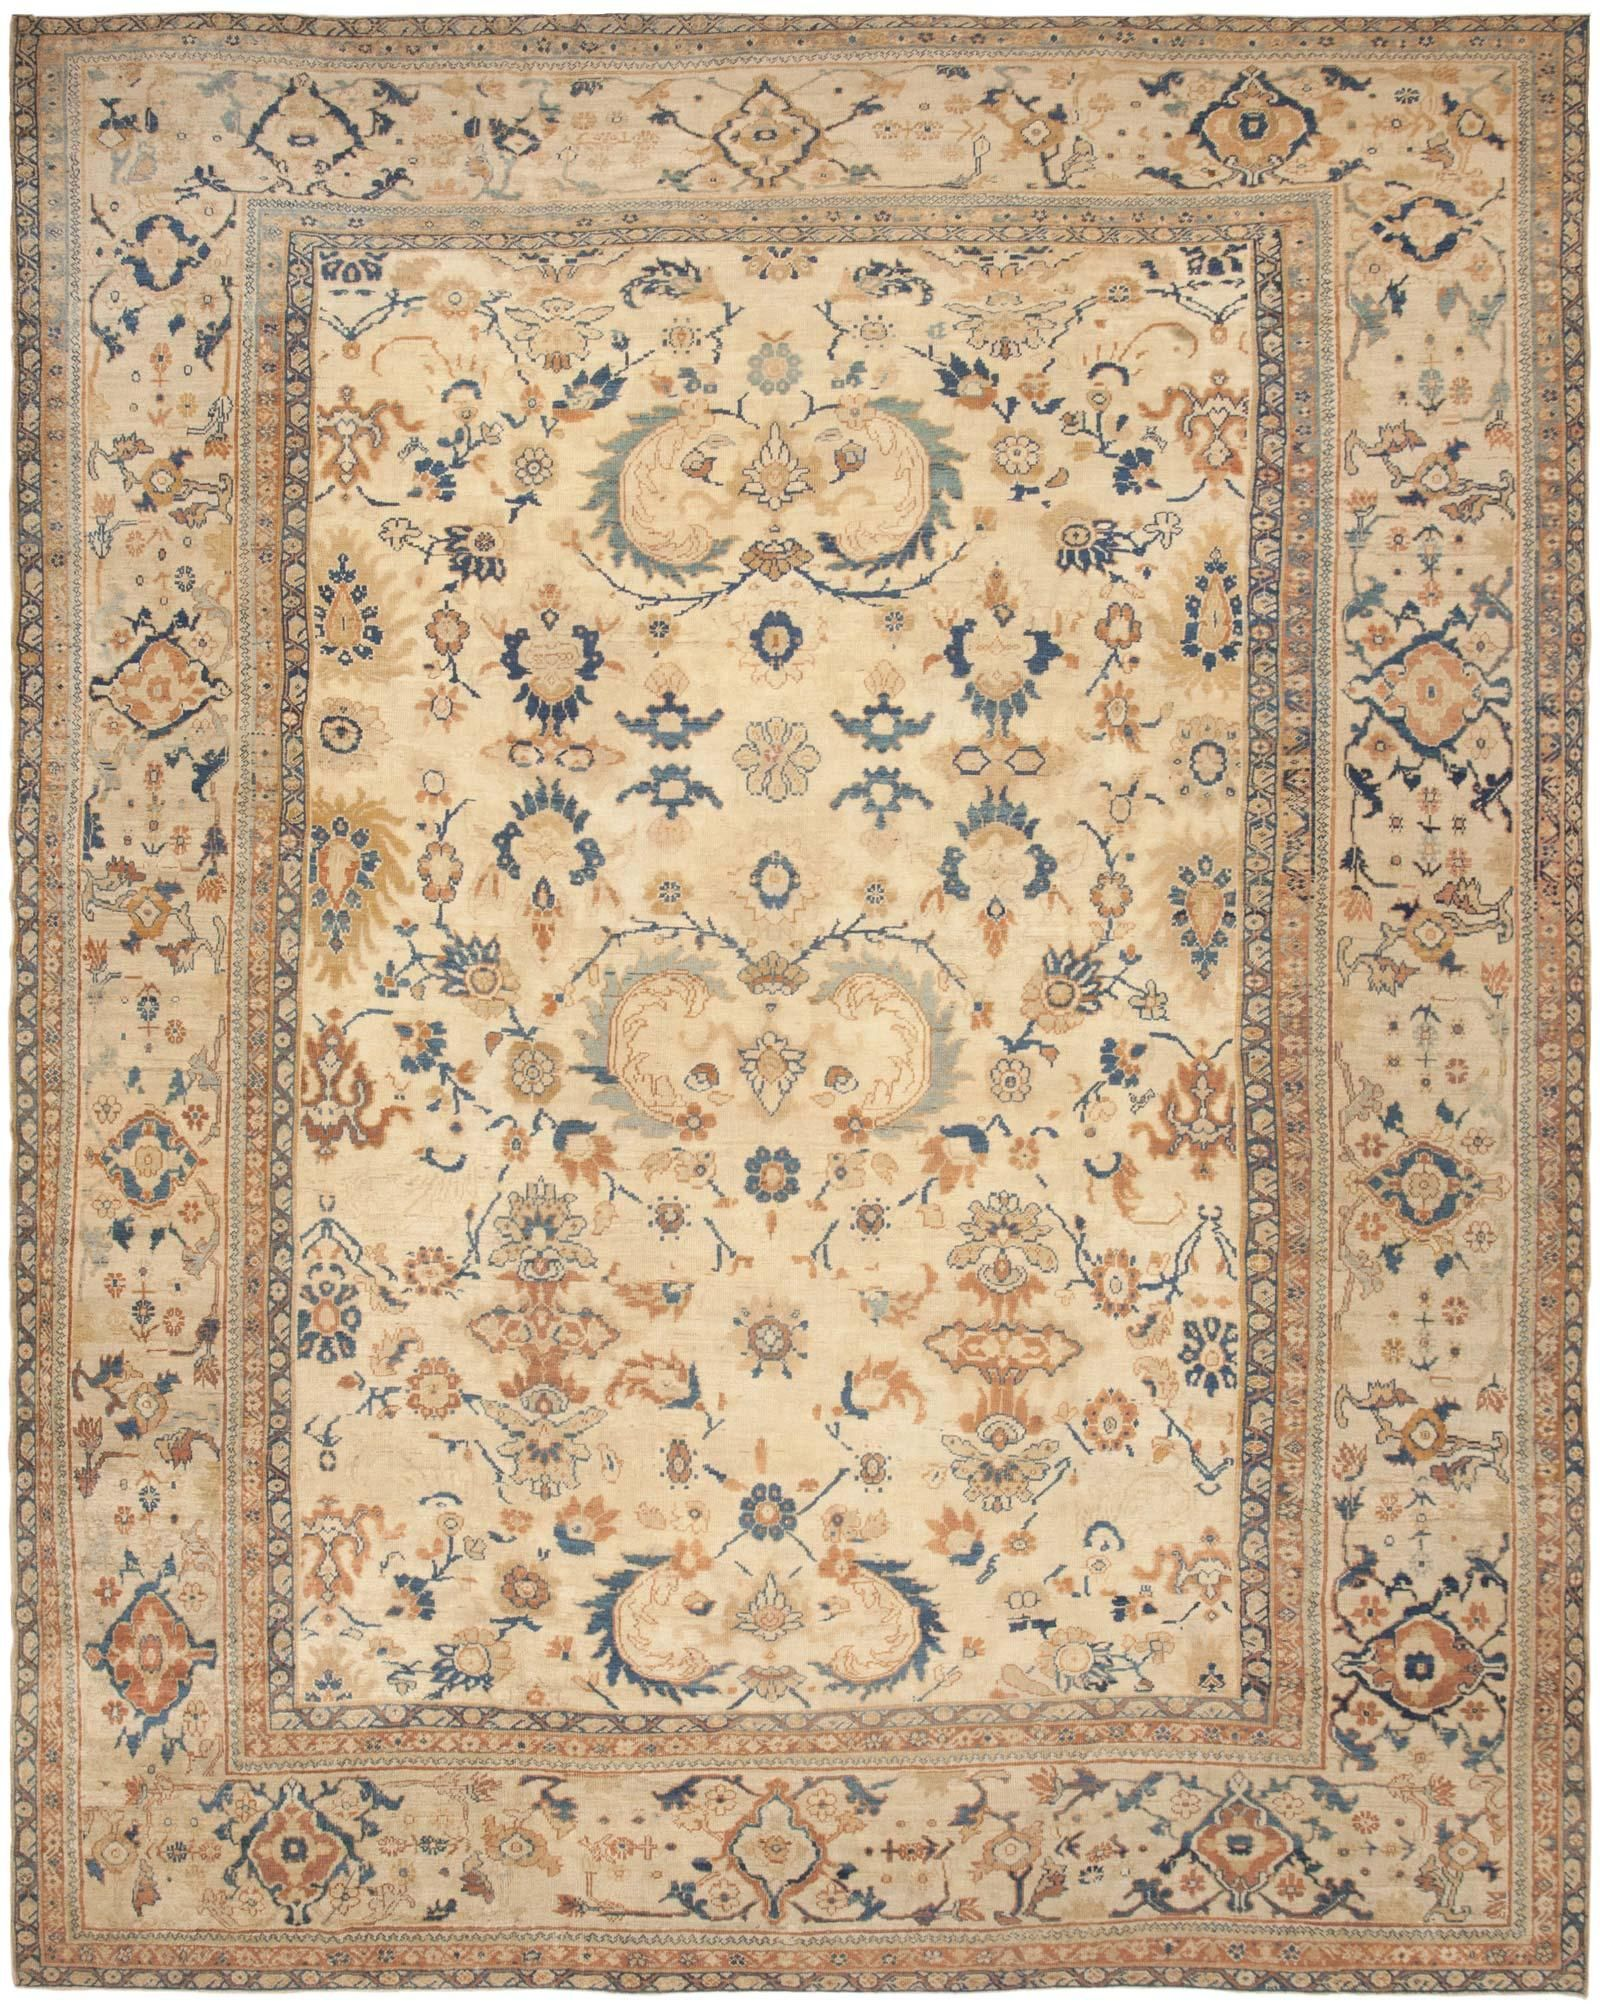 Antique Sultanabad Persian Rug 44726 Detail